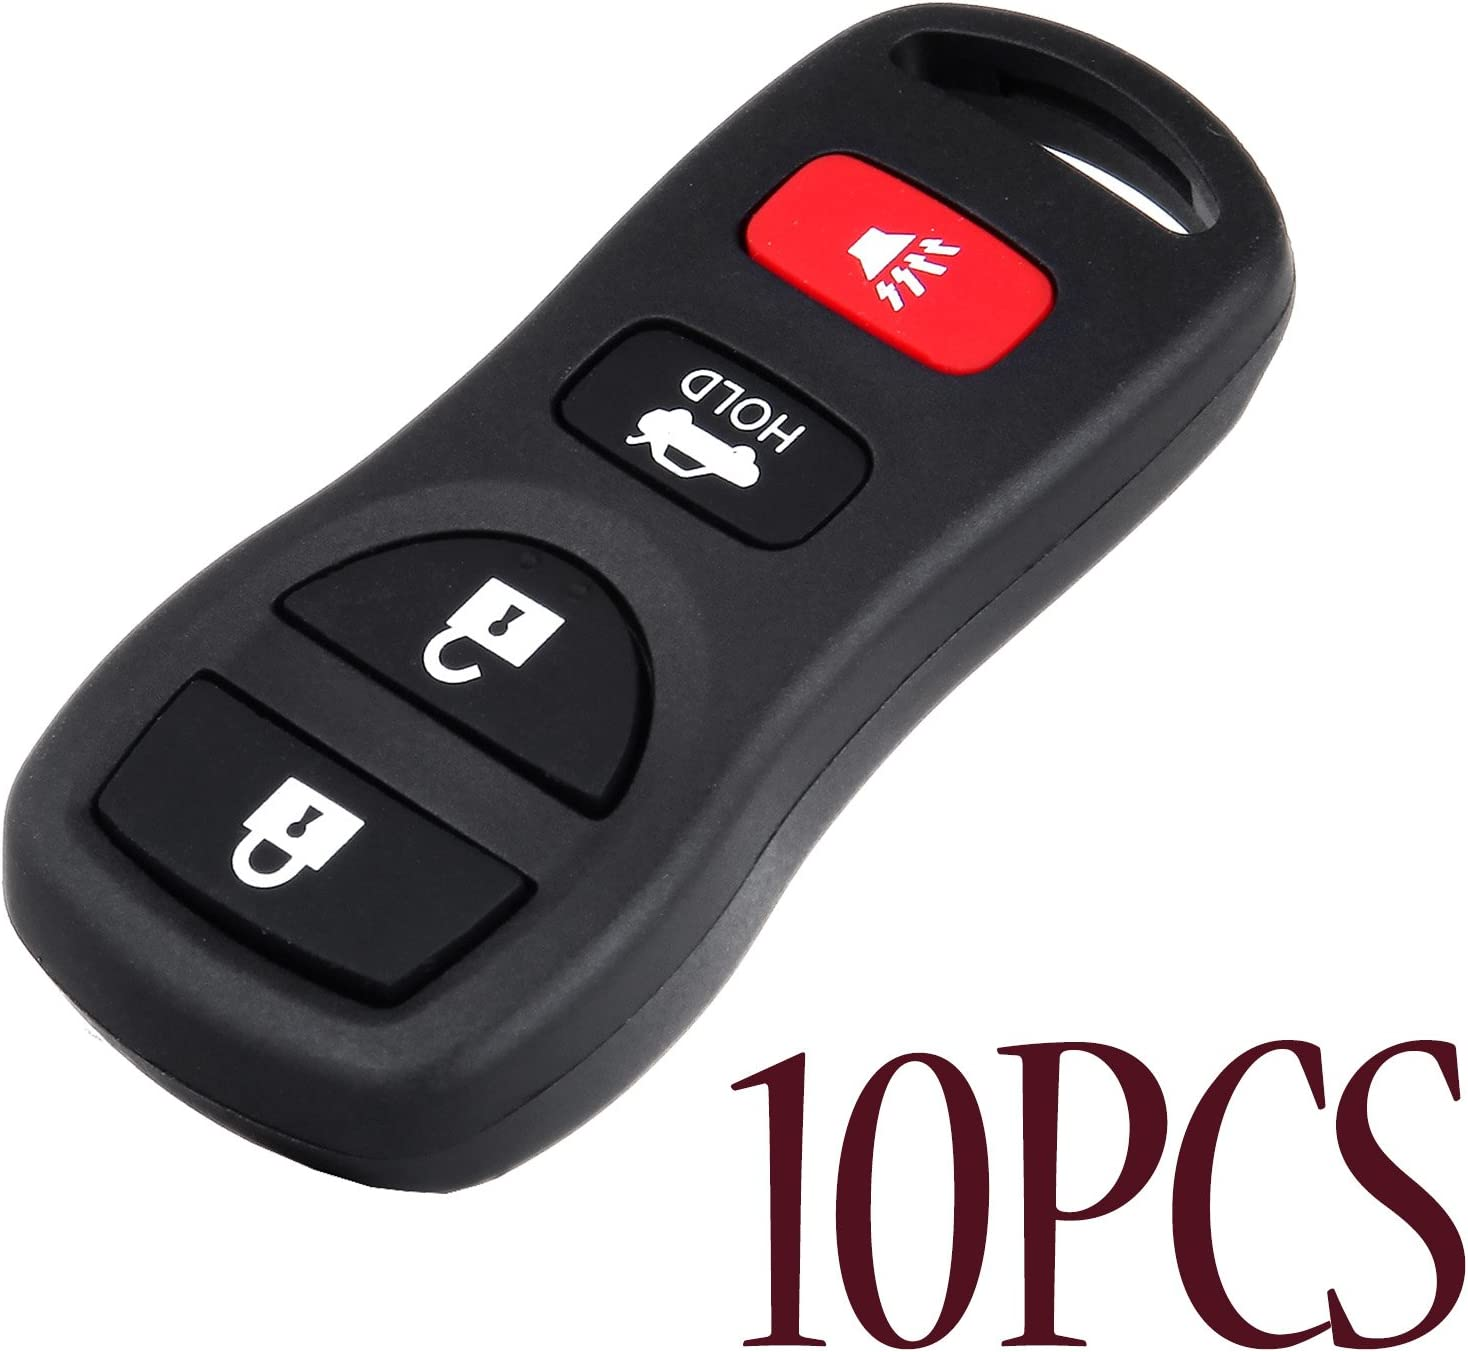 TUPARTS 10 Keyless Entry Remote Car Key Fob Compatible for 2006-2012 Infiniti I35 2003-2016 Infiniti EX35 Car Keyless Entry Remote Replacement for KBRASTU15